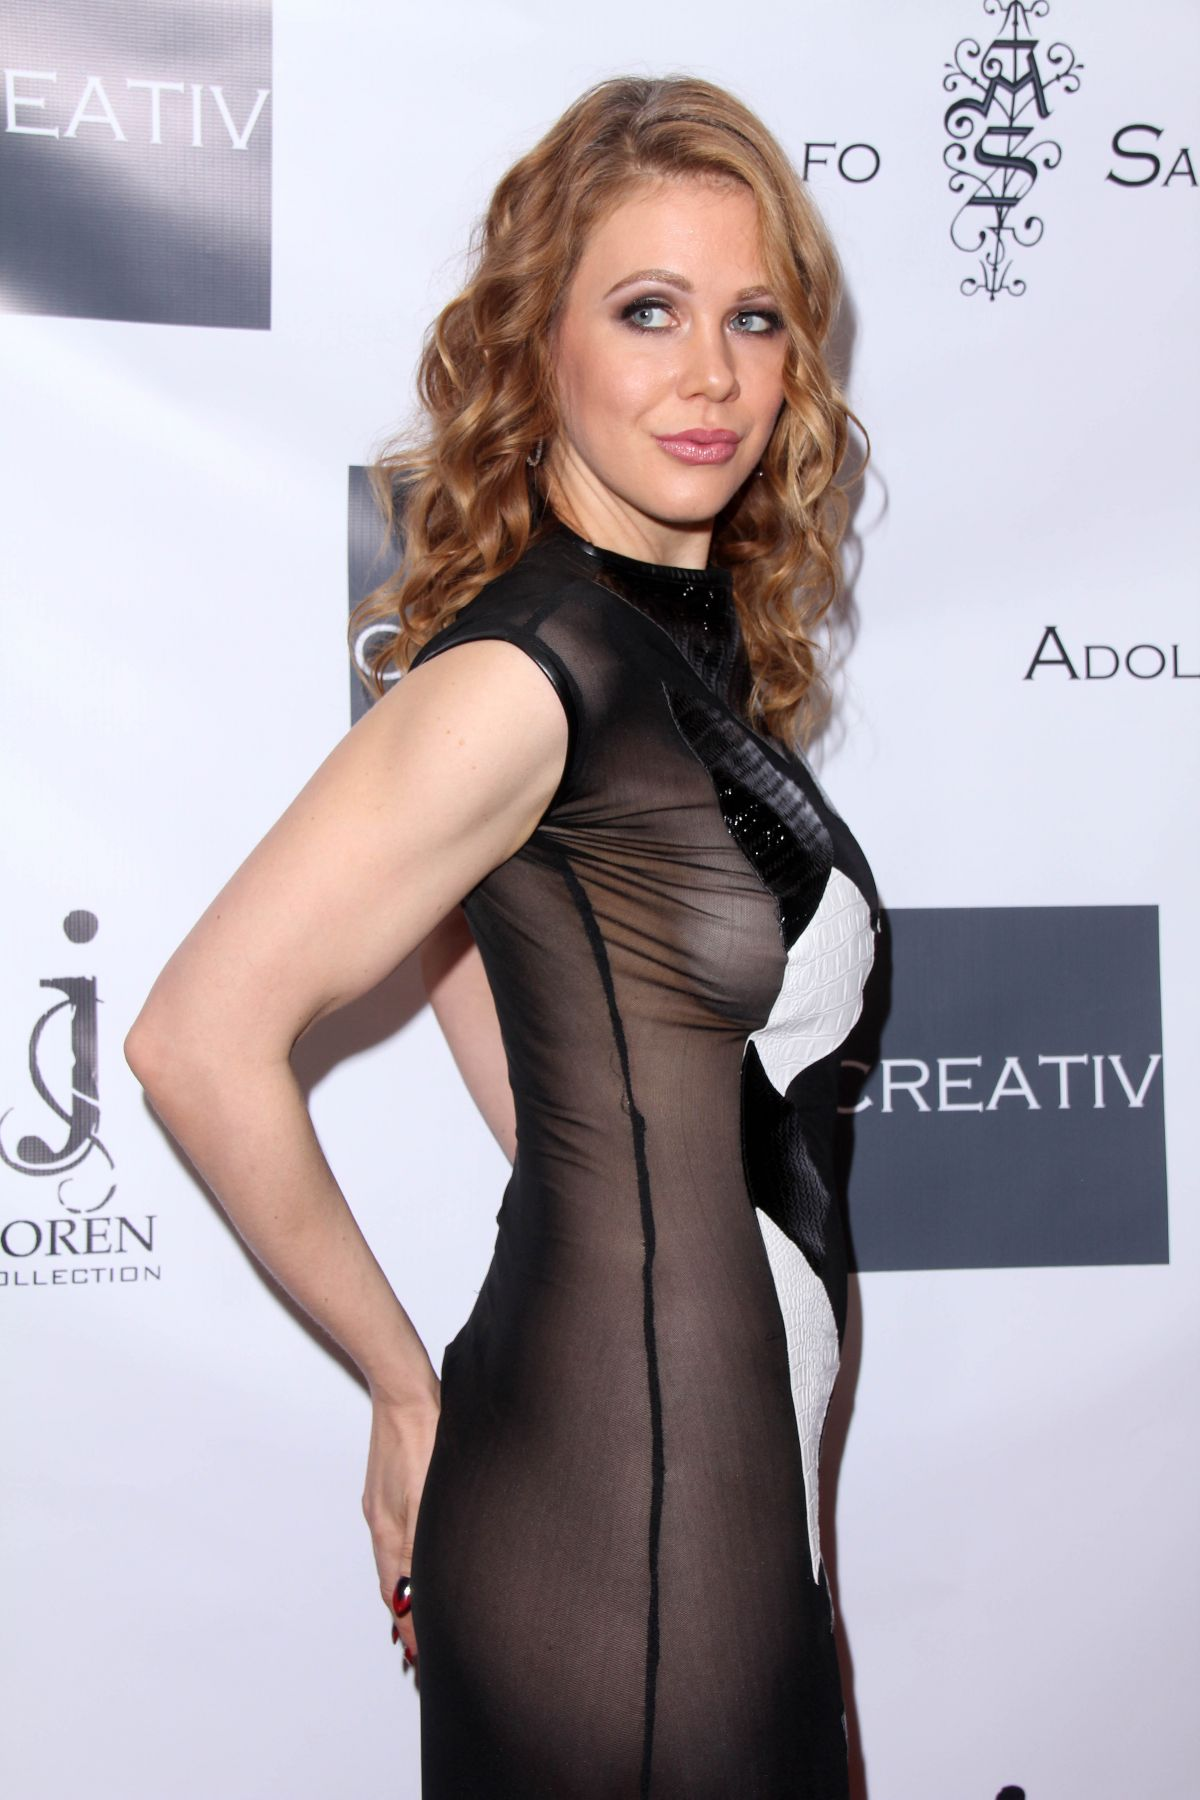 maitland wardmaitland ward википедия, maitland ward imdb, maitland ward boy meets world, maitland ward dress, maitland ward facebook, maitland ward, maitland ward instagram, maitland ward comic con, maitland ward twitter, maitland ward reddit, maitland ward body paint